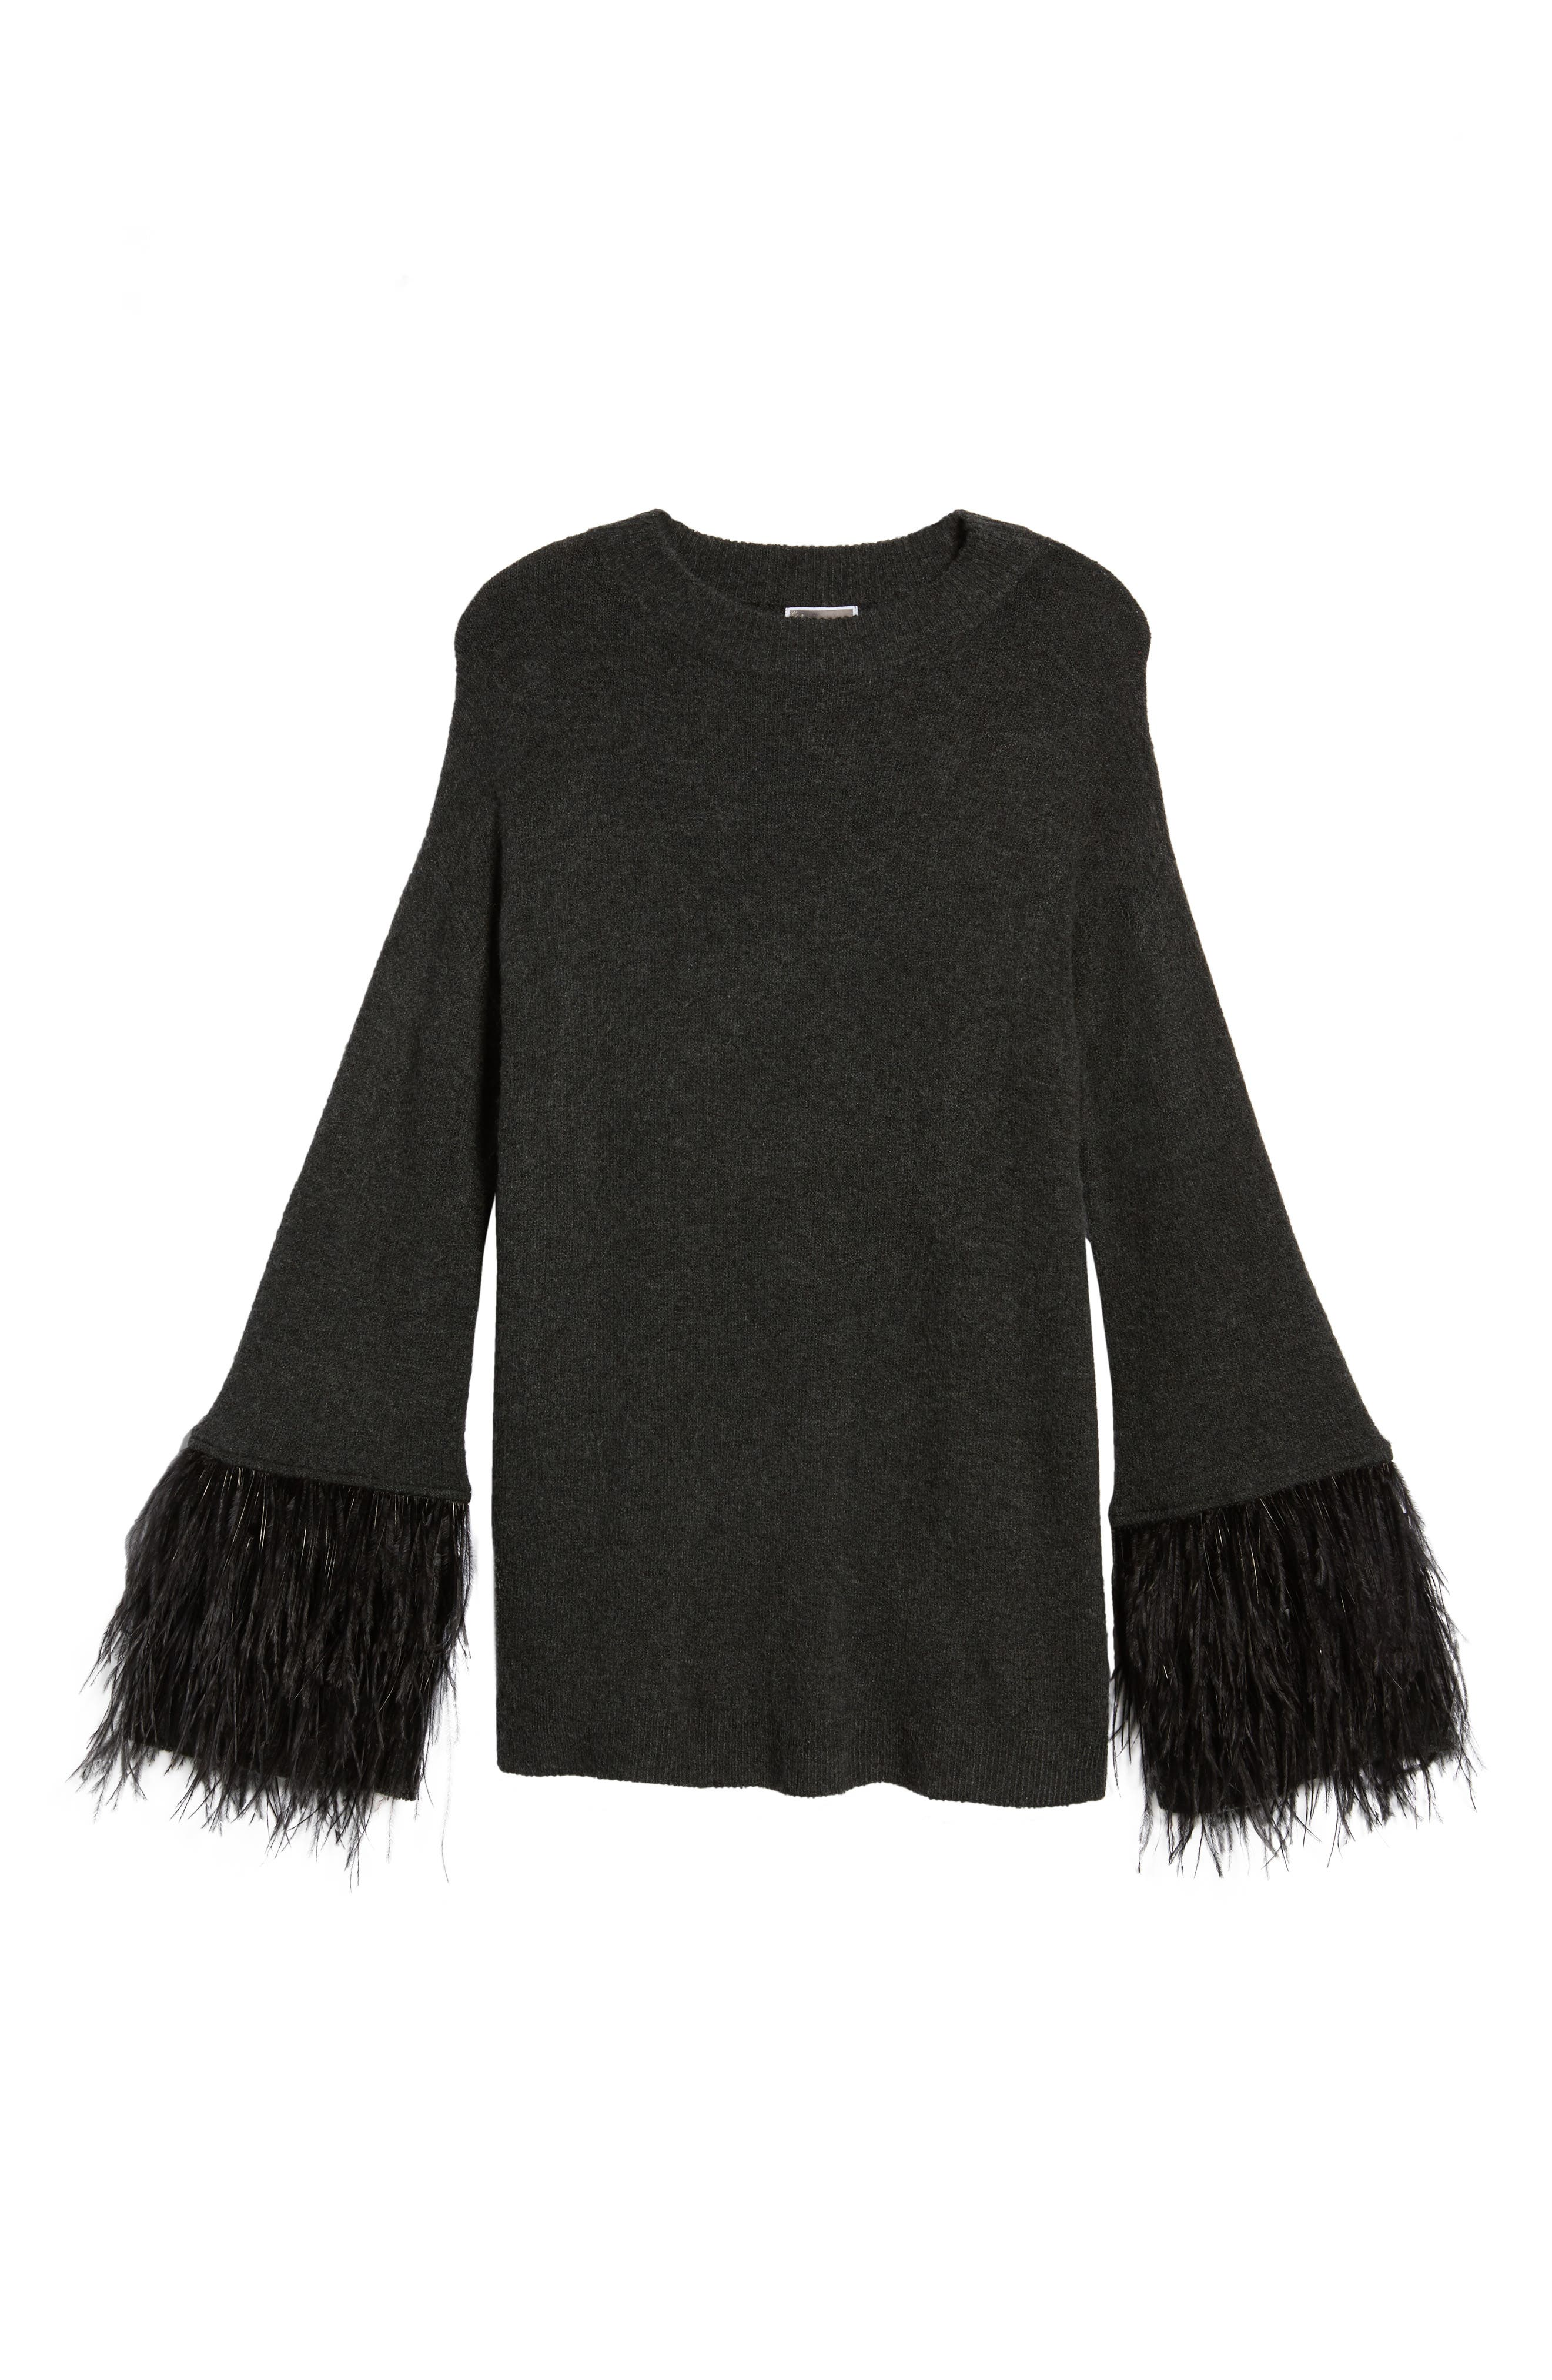 Feather Trim Sweater,                             Alternate thumbnail 6, color,                             021